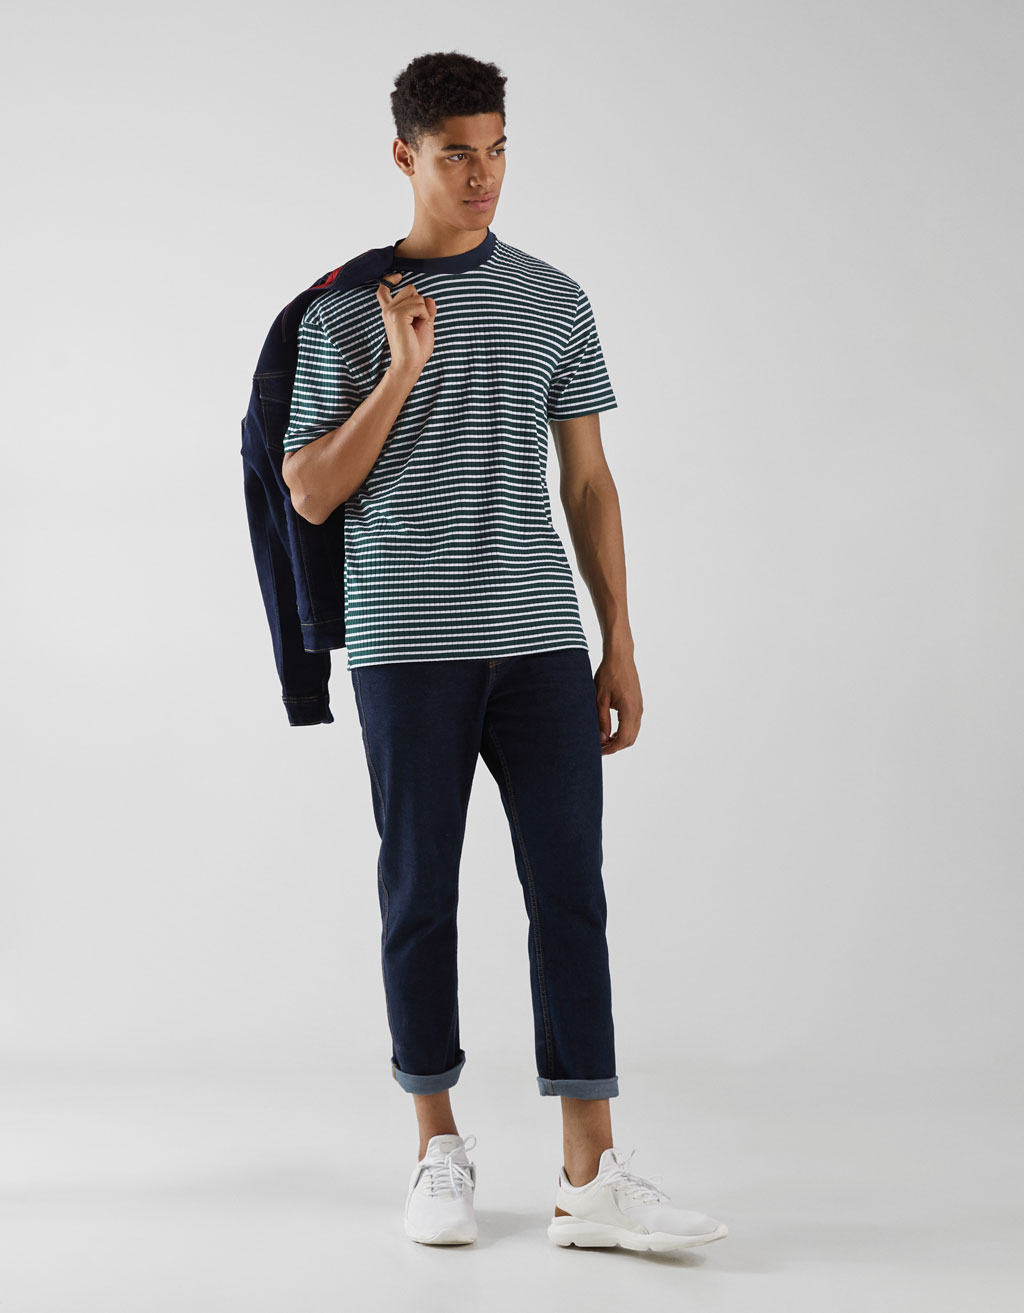 Ribbed T-shirt with a stripe print